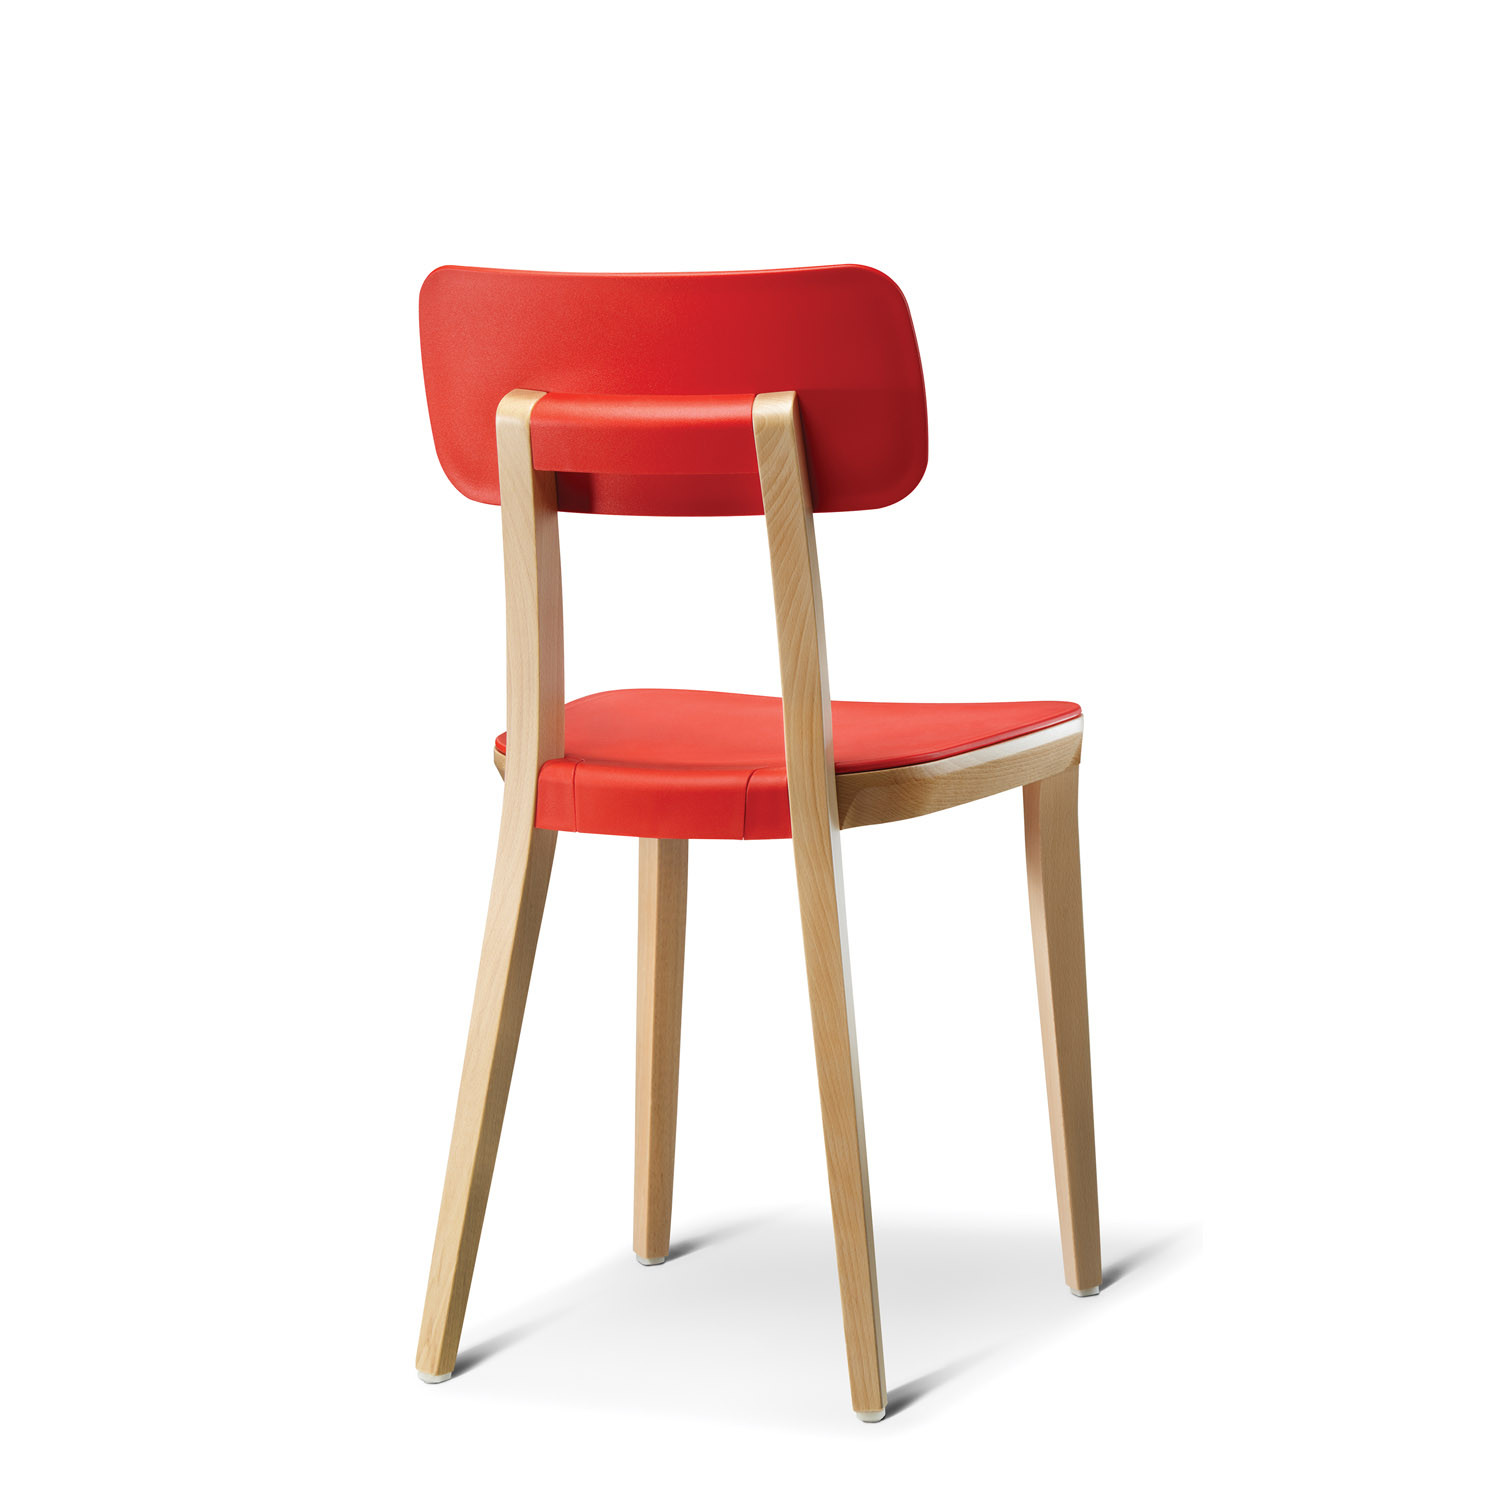 Retro Breakout Chair MRT1 Solid Wood Cafe Chairs